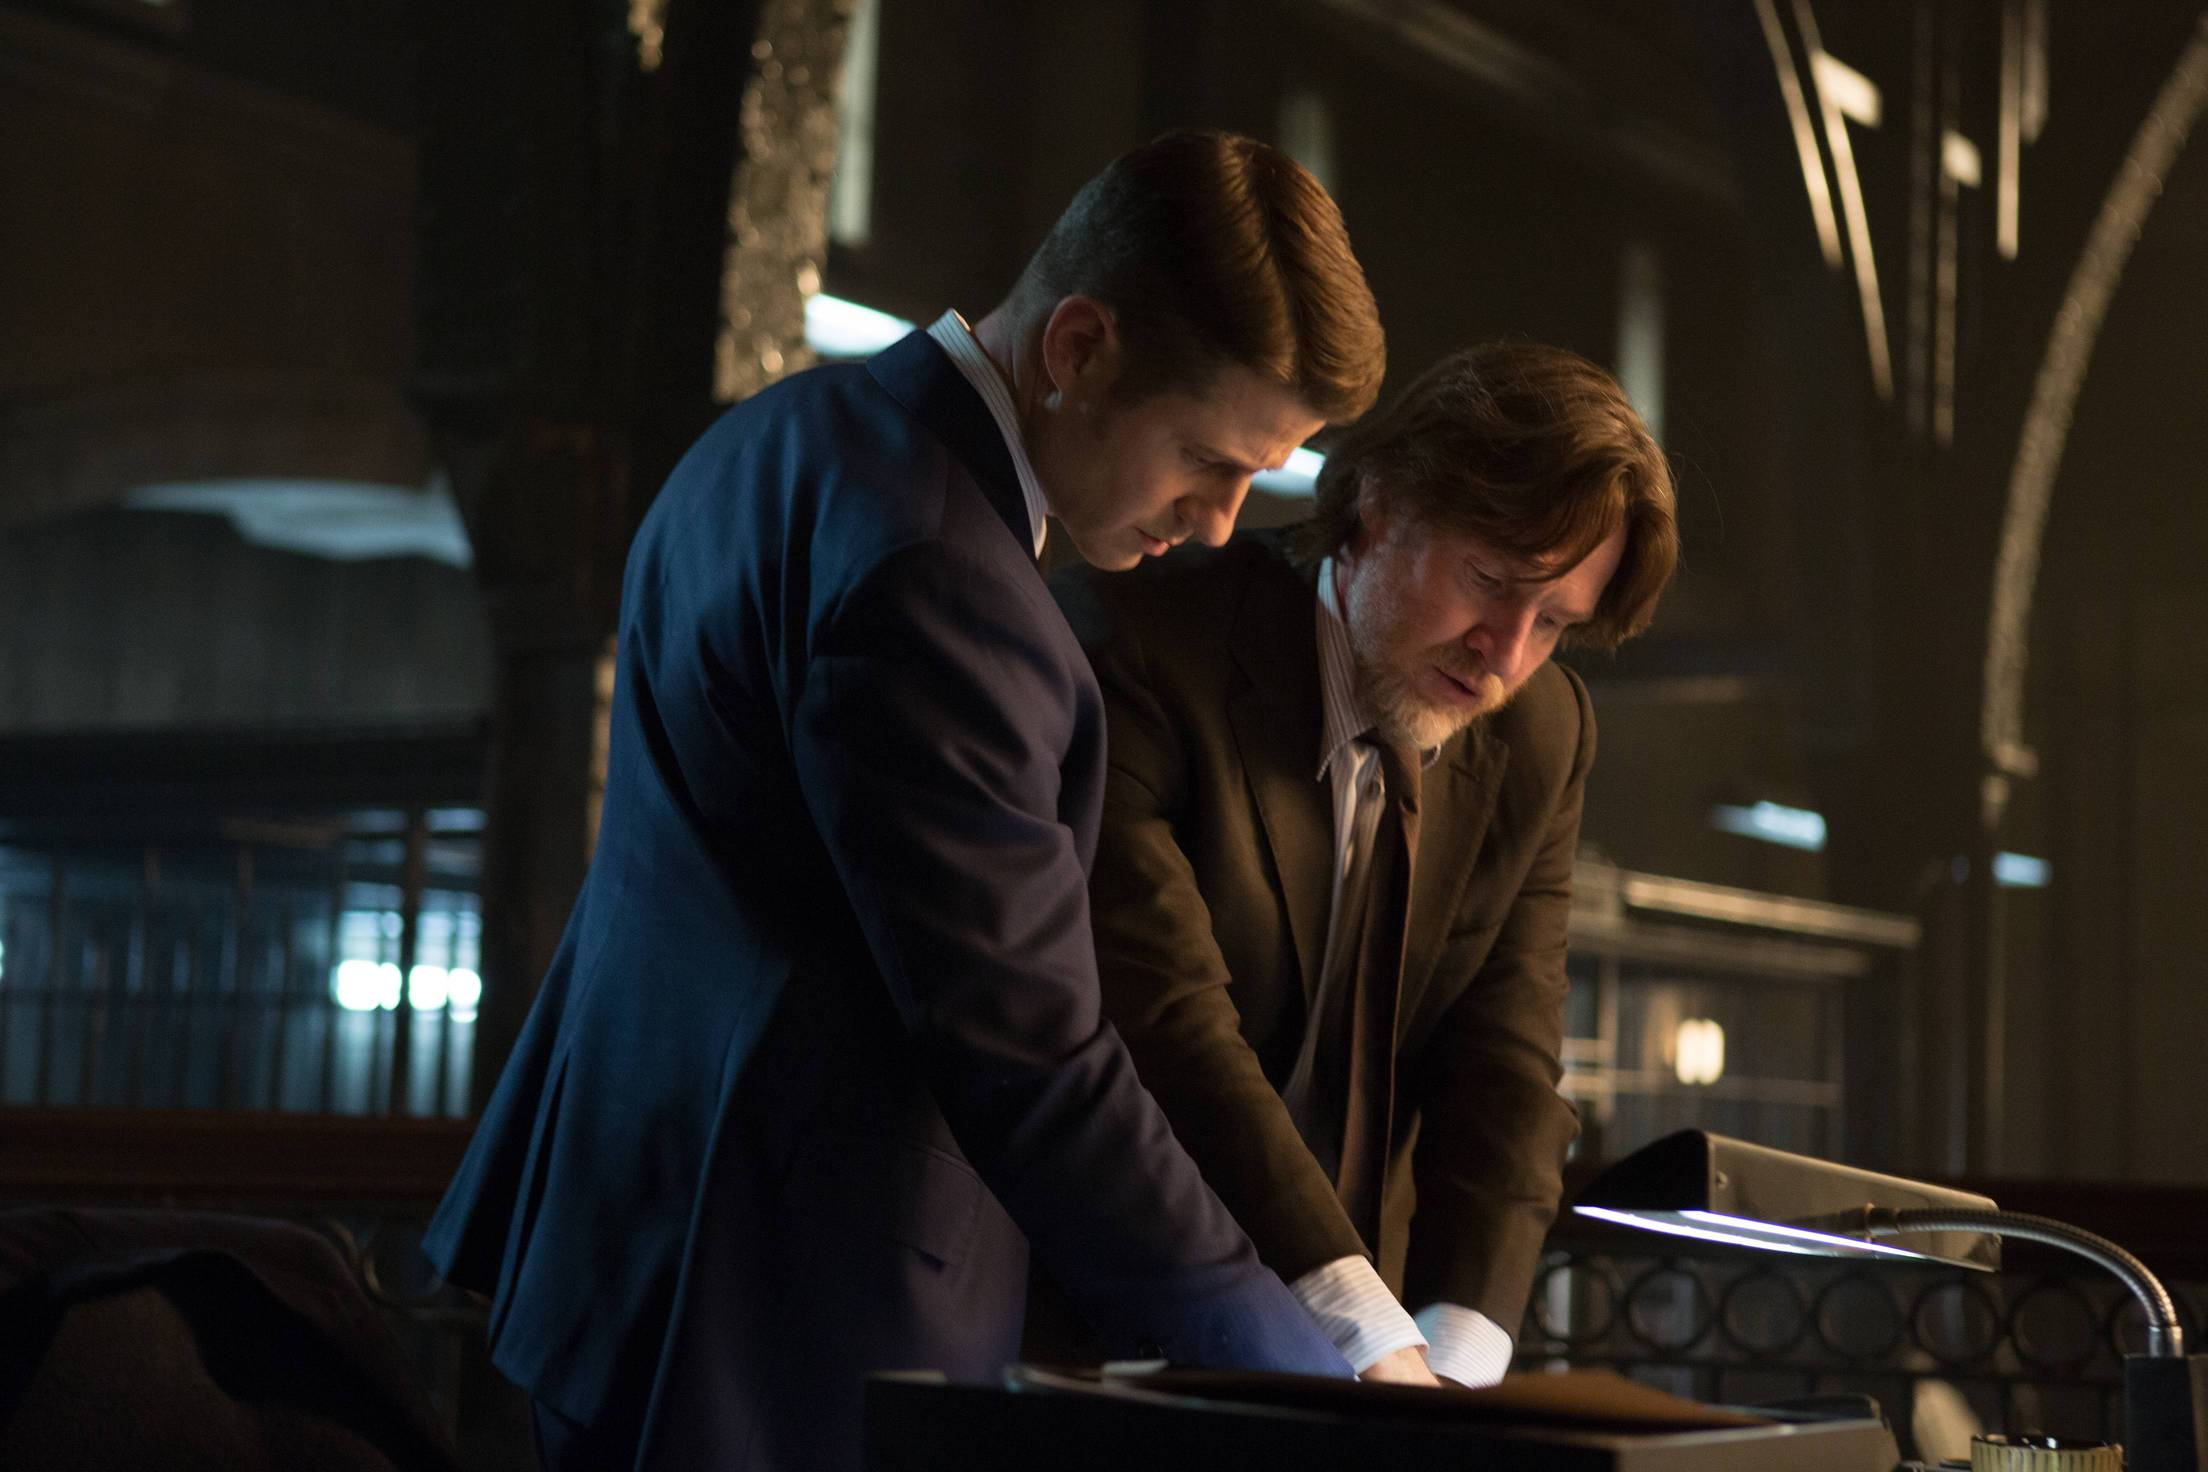 Gotham - Episode 1.15 - The Scarecrow